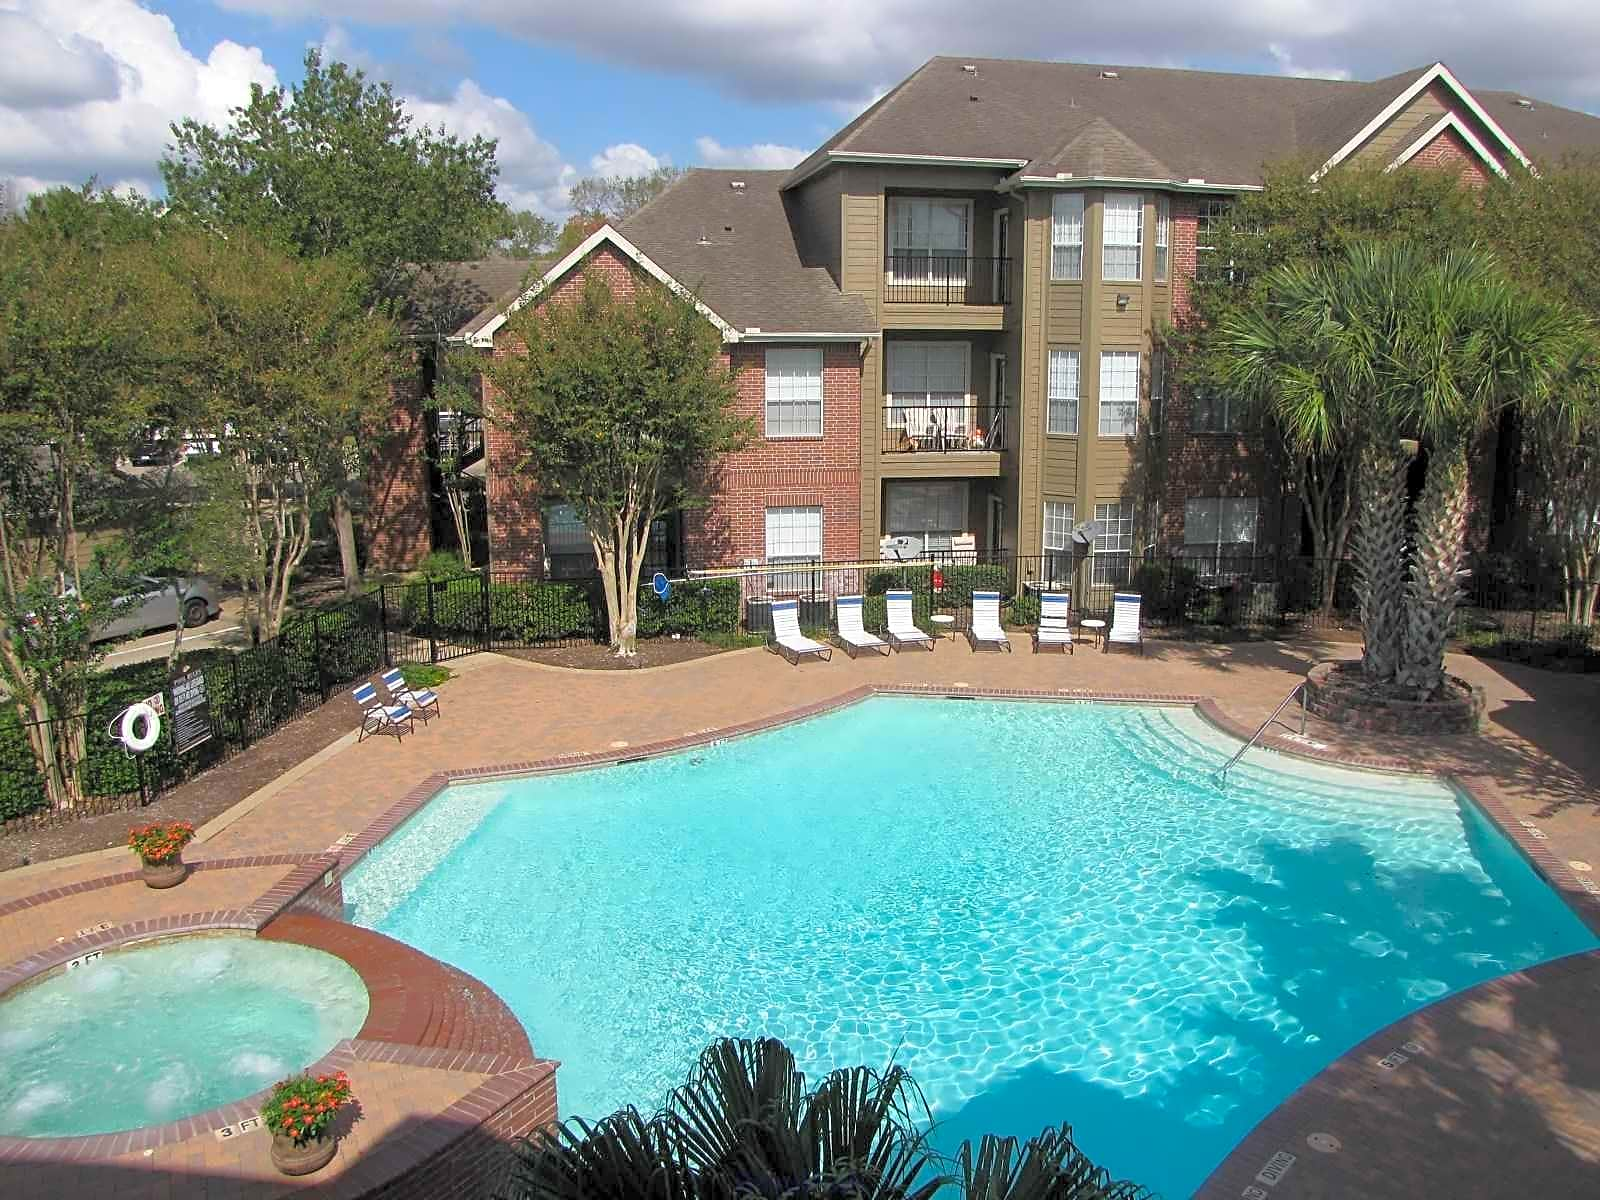 Photo: Sugar Land Apartment for Rent - $1155.00 / month; 2 Bd & 1 Ba